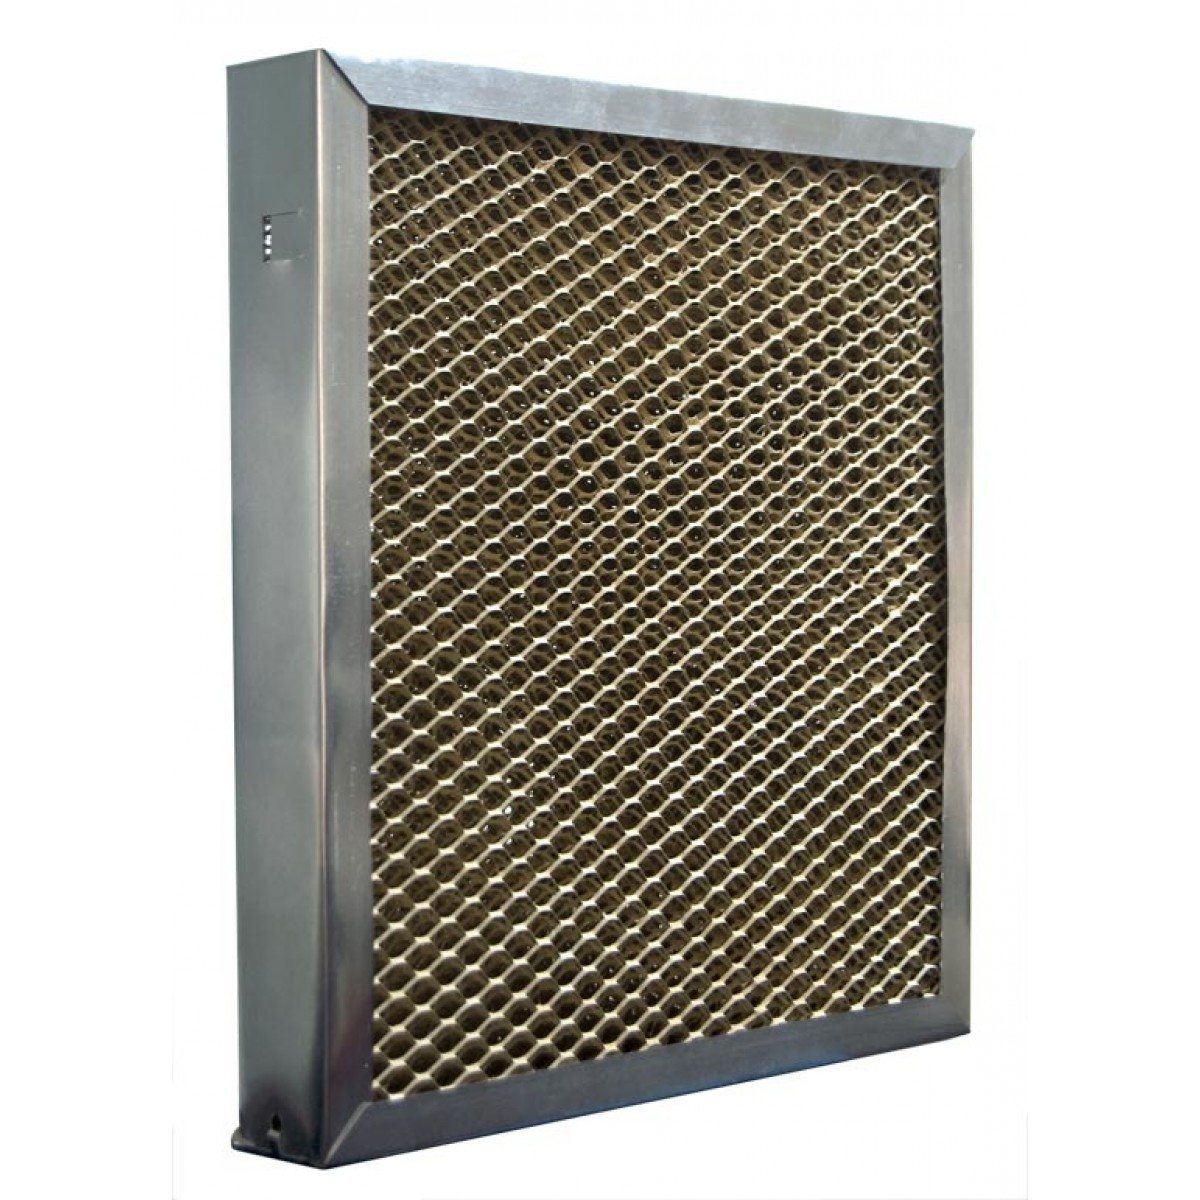 Humidifier Furnace Filter with Frame by Tier1 for Kenmore humidifier #393021